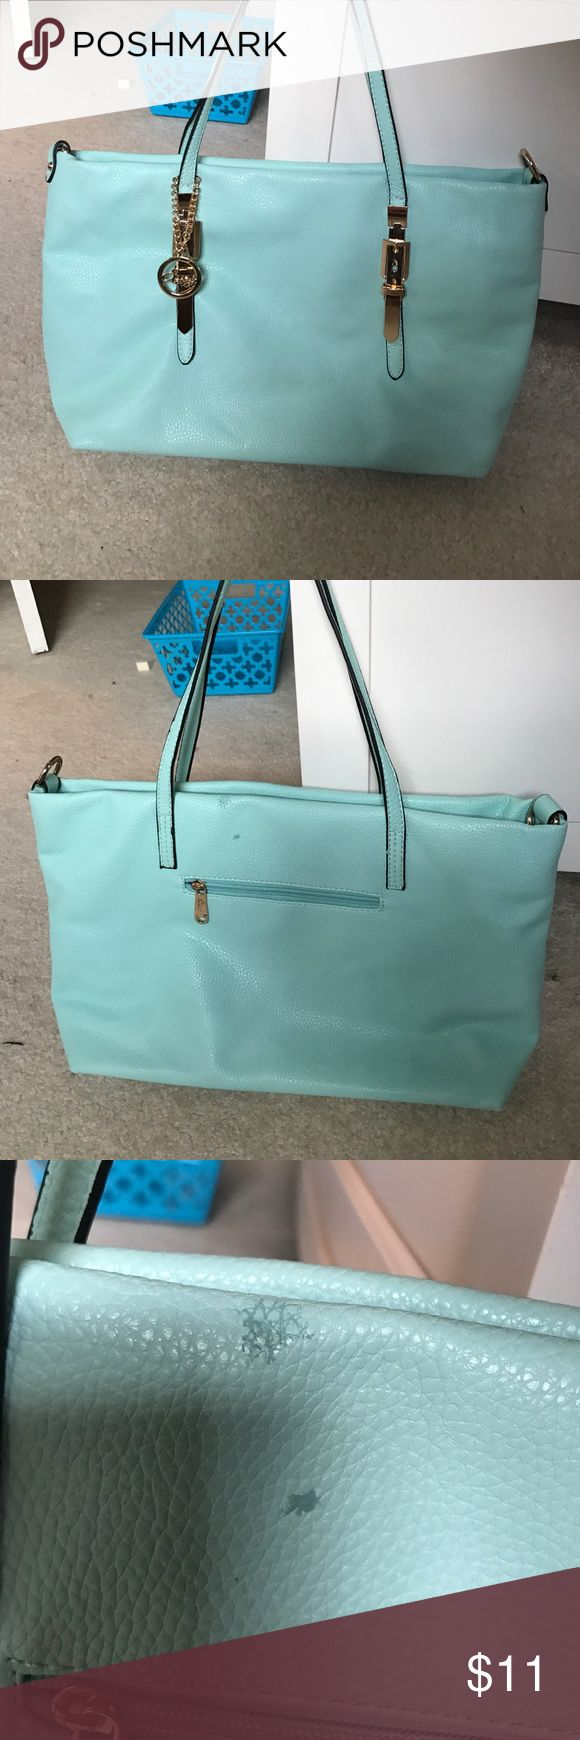 Sarit Celeste (Light Blue) zipped tote bag purse Gently used, no odor or stains that I noticed except the small fabric issue (see picture). Otherwise, nice tote bag, not too big but not too small! Sarit Bags